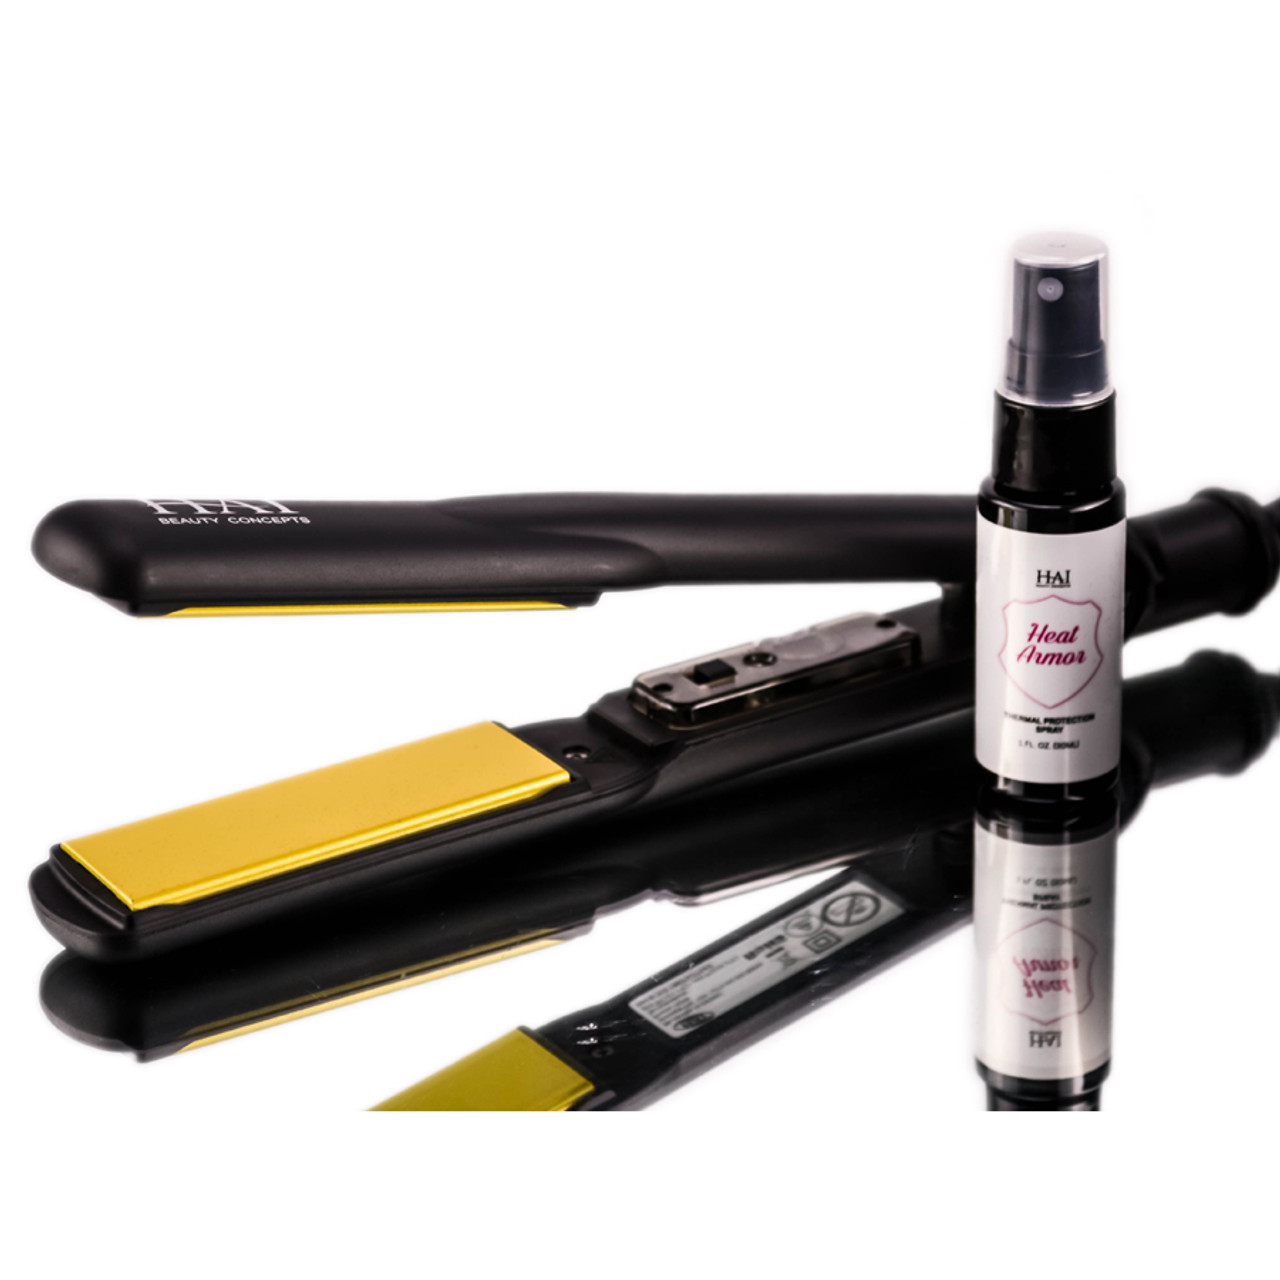 100 Ceramic Flat Iron Brands